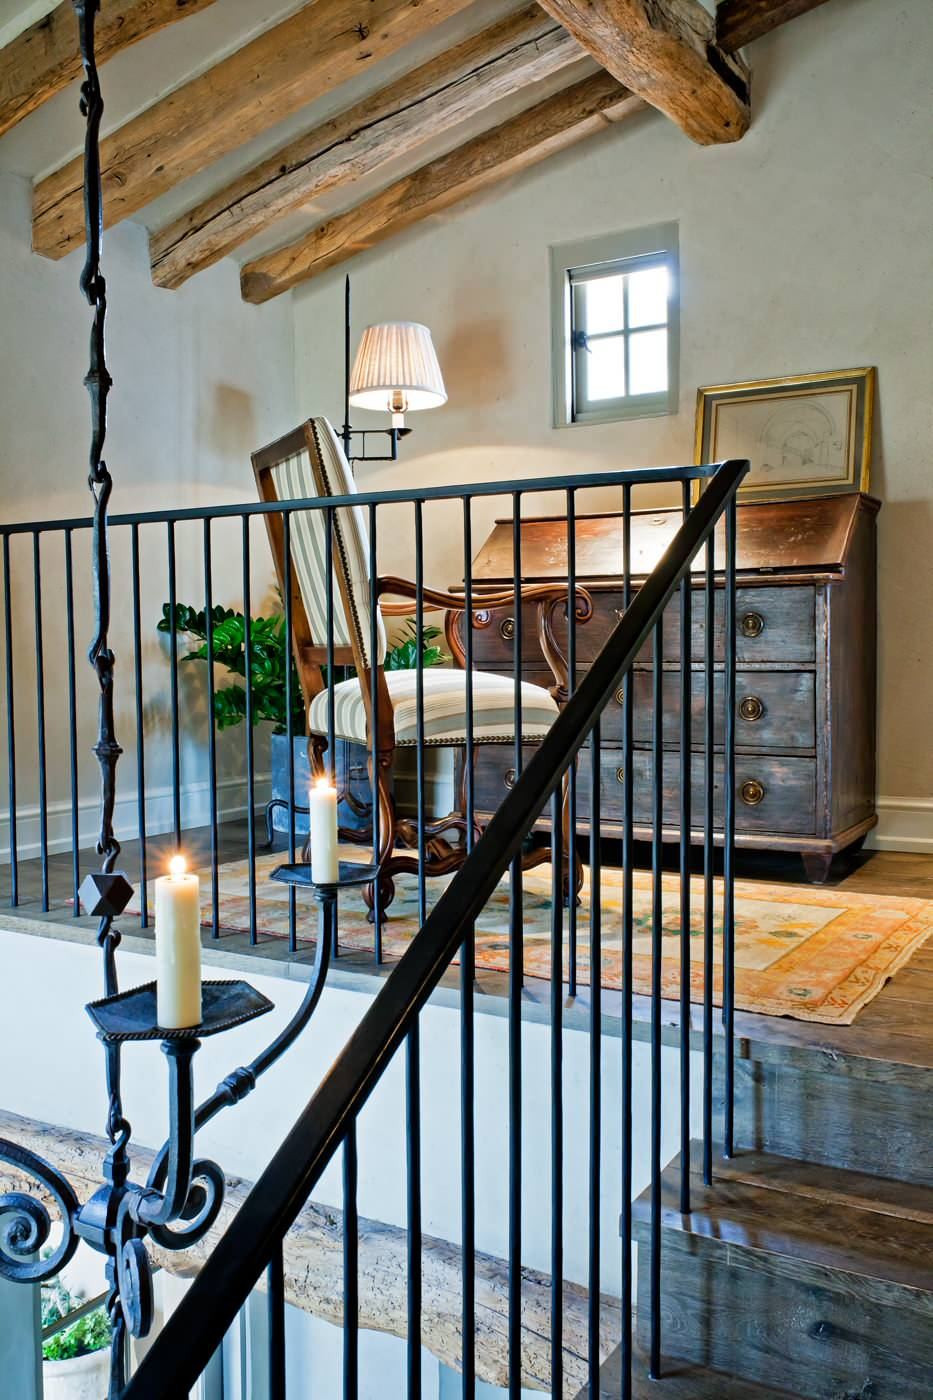 Inspiring Iron Railings Design for Staircase at Your Home: Rustic Home Office Plus Area Rug And Casement Windows With Exposed Beams In Loft Plus Secretary Desk Also Sloped Ceiling And Wood Flooring Plus Wall Shades Lamp Also Iron Railing